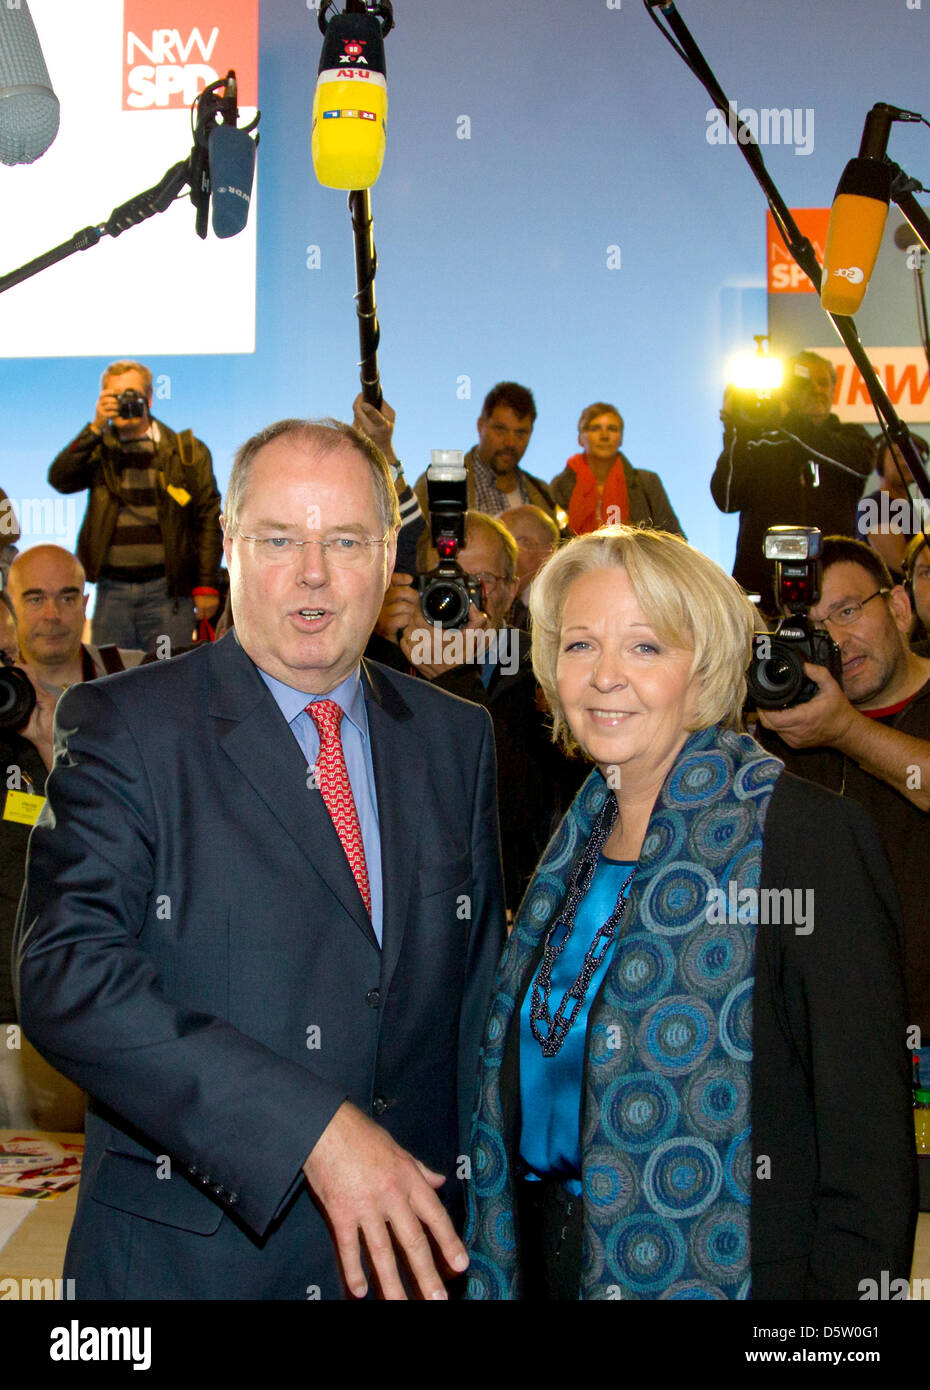 SPD chancellor candidate Peer Steinbrueck stands next to Premier of North Rhine-Westphalia (NRW) Hannelore - Stock Image